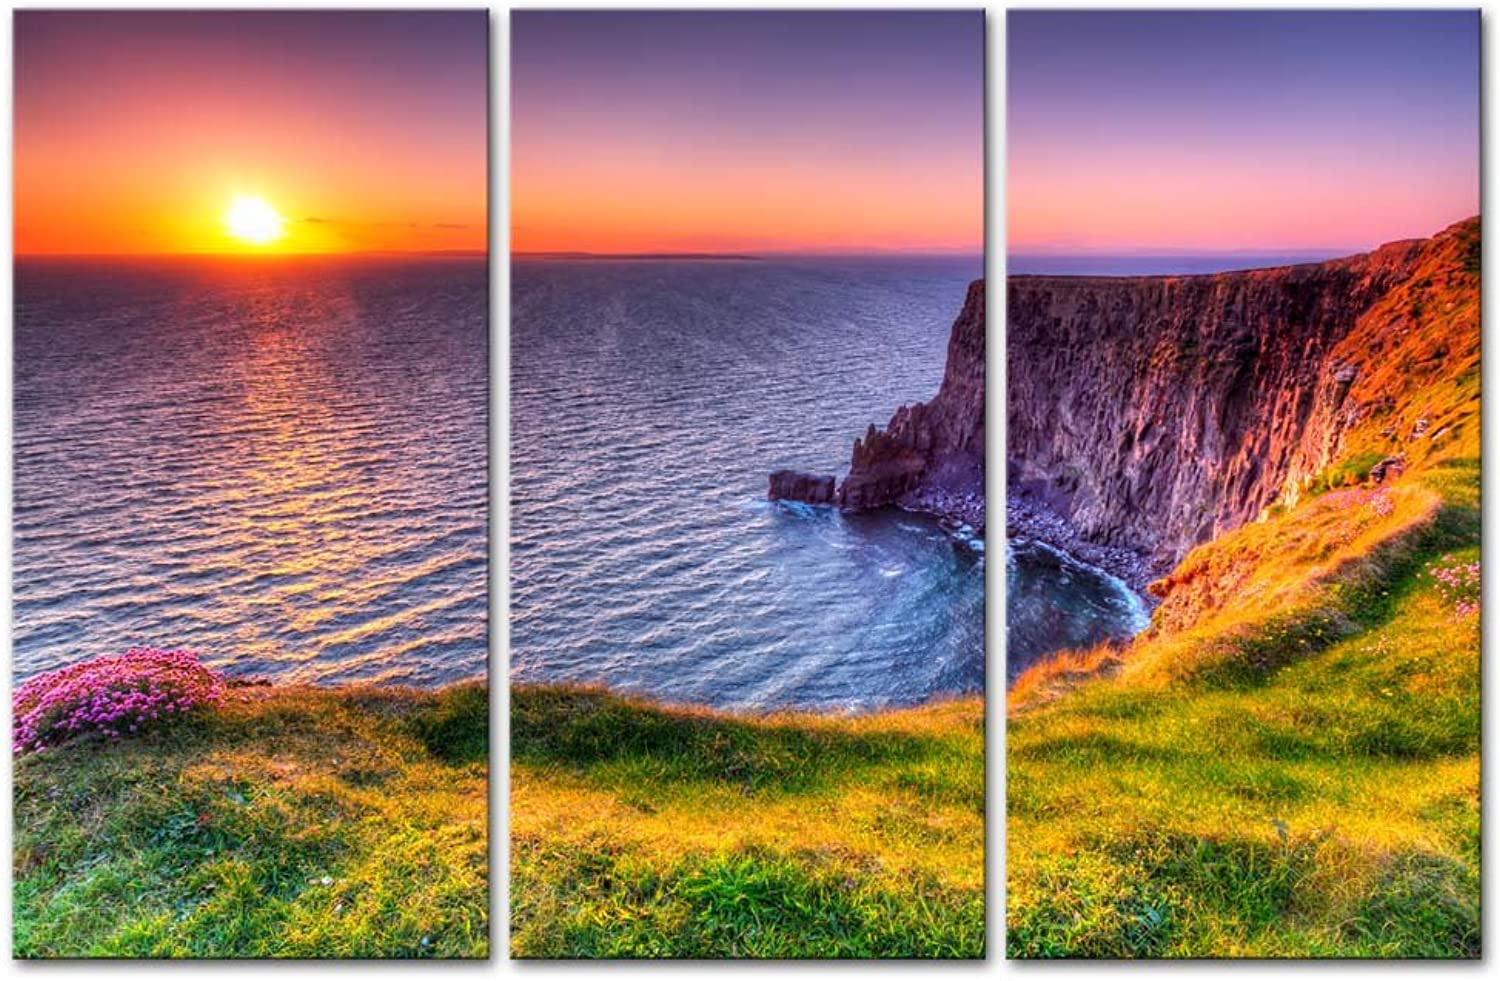 Wall Art Decor Poster Painting On Canvas Print Pictures 3 Pieces Destination Cliffs Of Moher Beach At Sunset Doolin County Clare Ireland Seascape Sunrise Framed Picture For Home Decoration Living Room Artwork